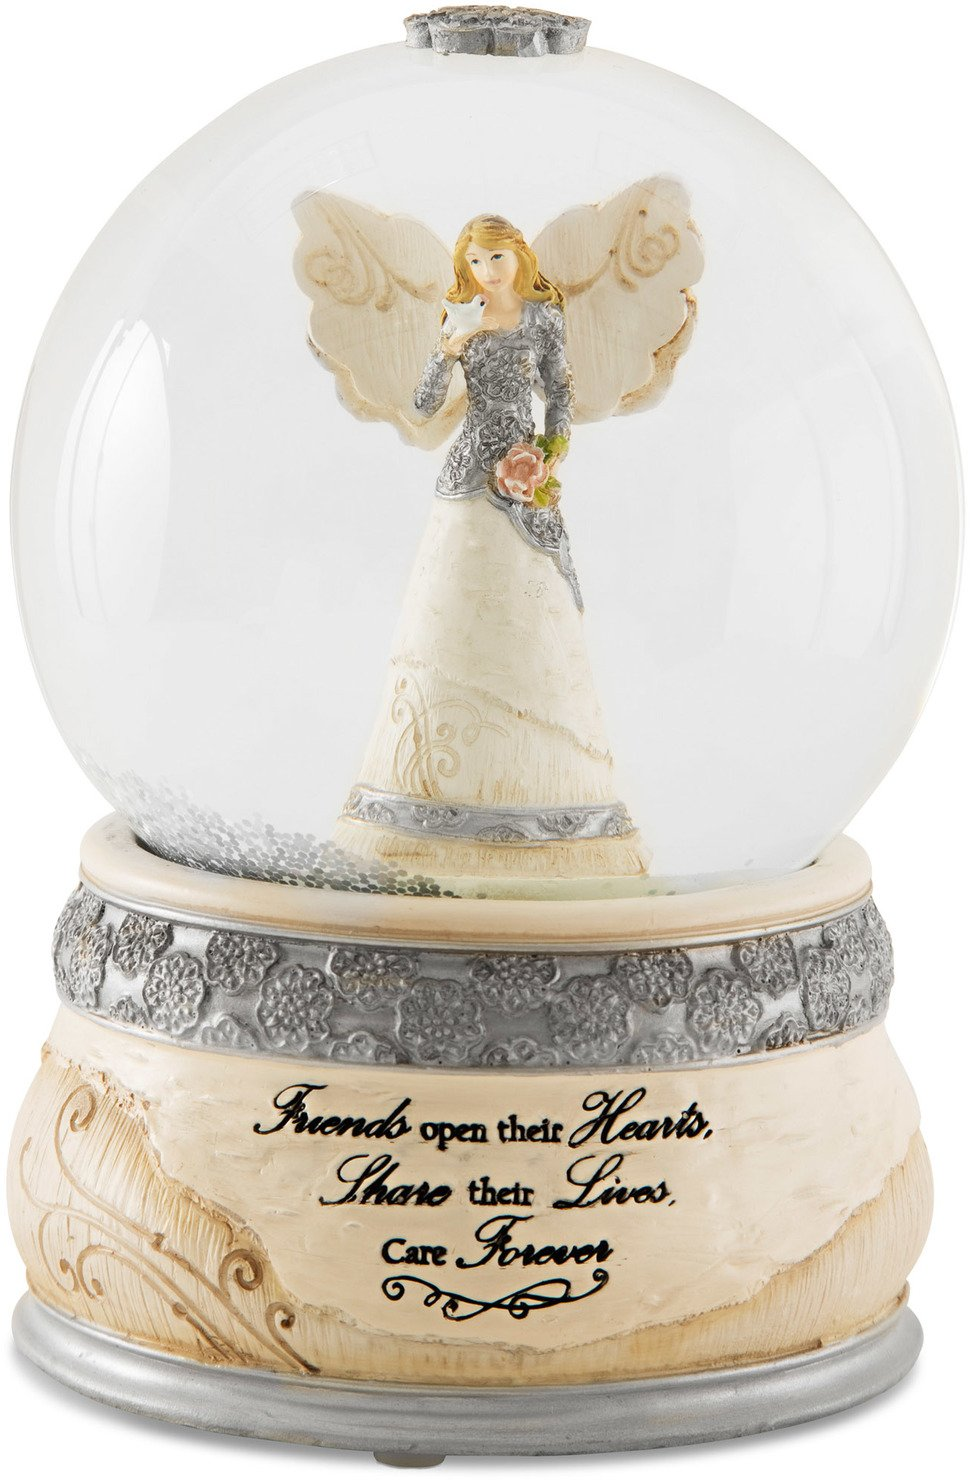 Elements Friends Angel Musical Waterglobe, 6-Inch/100mm, Inscription Friends Open Their Hearts Share Their Lives, Care Forever